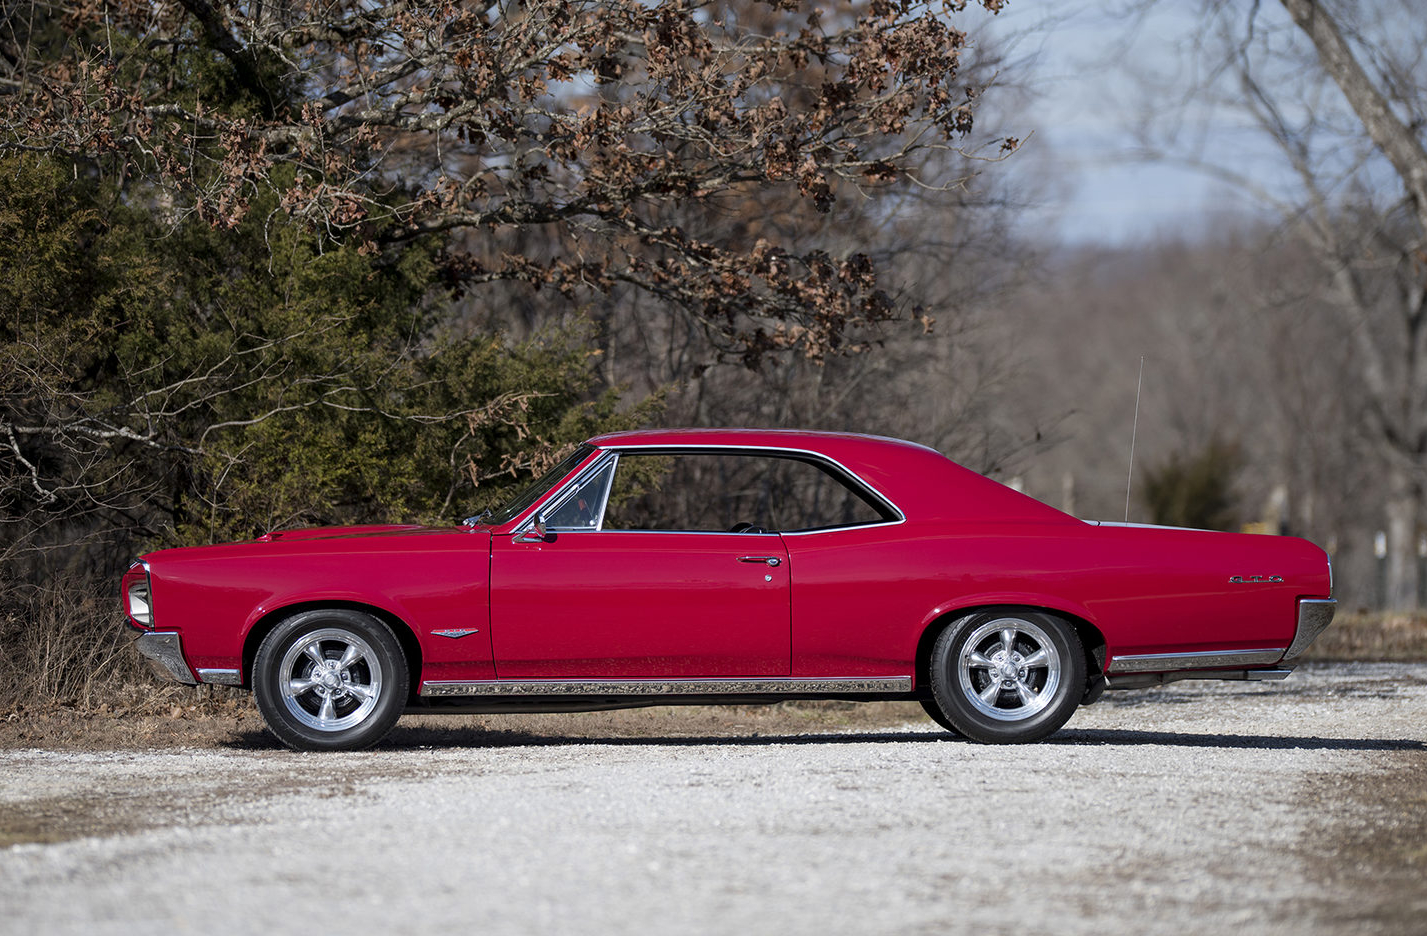 1966 Pontiac Gto Revivaler 1965 Phs Documented 4 Speed Tri Power 389 Red Black The Is One Of Most Iconic American Cars Sixties